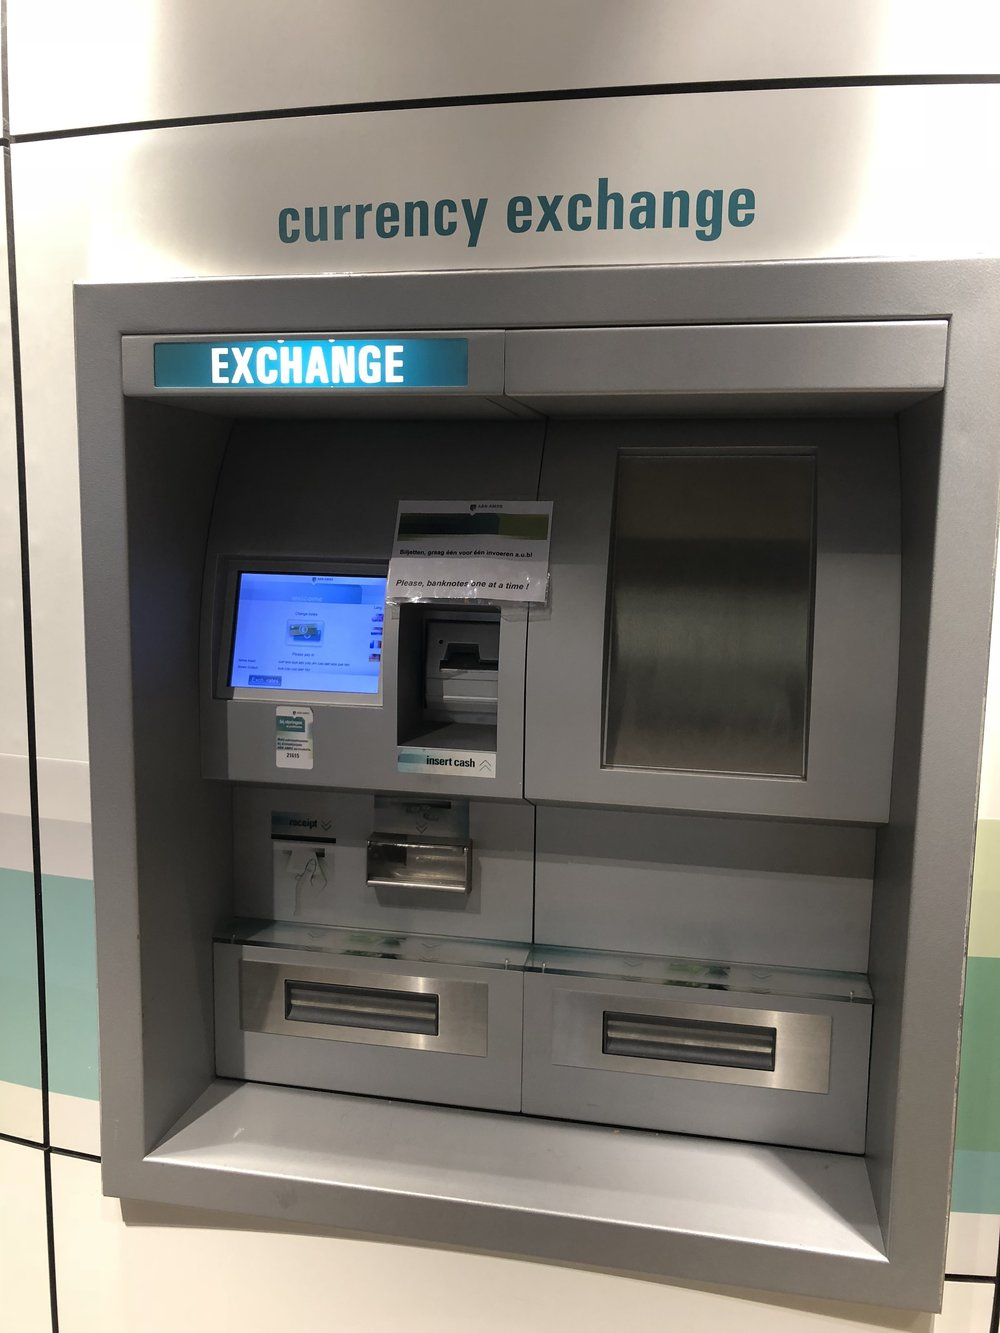 Need cash? - The onsite ABN AMRO bank has ATMs that handle a variety of functions. You can use your ATM/Credit card to withdraw Euros or US$ and one machine even allows you to exchange currency